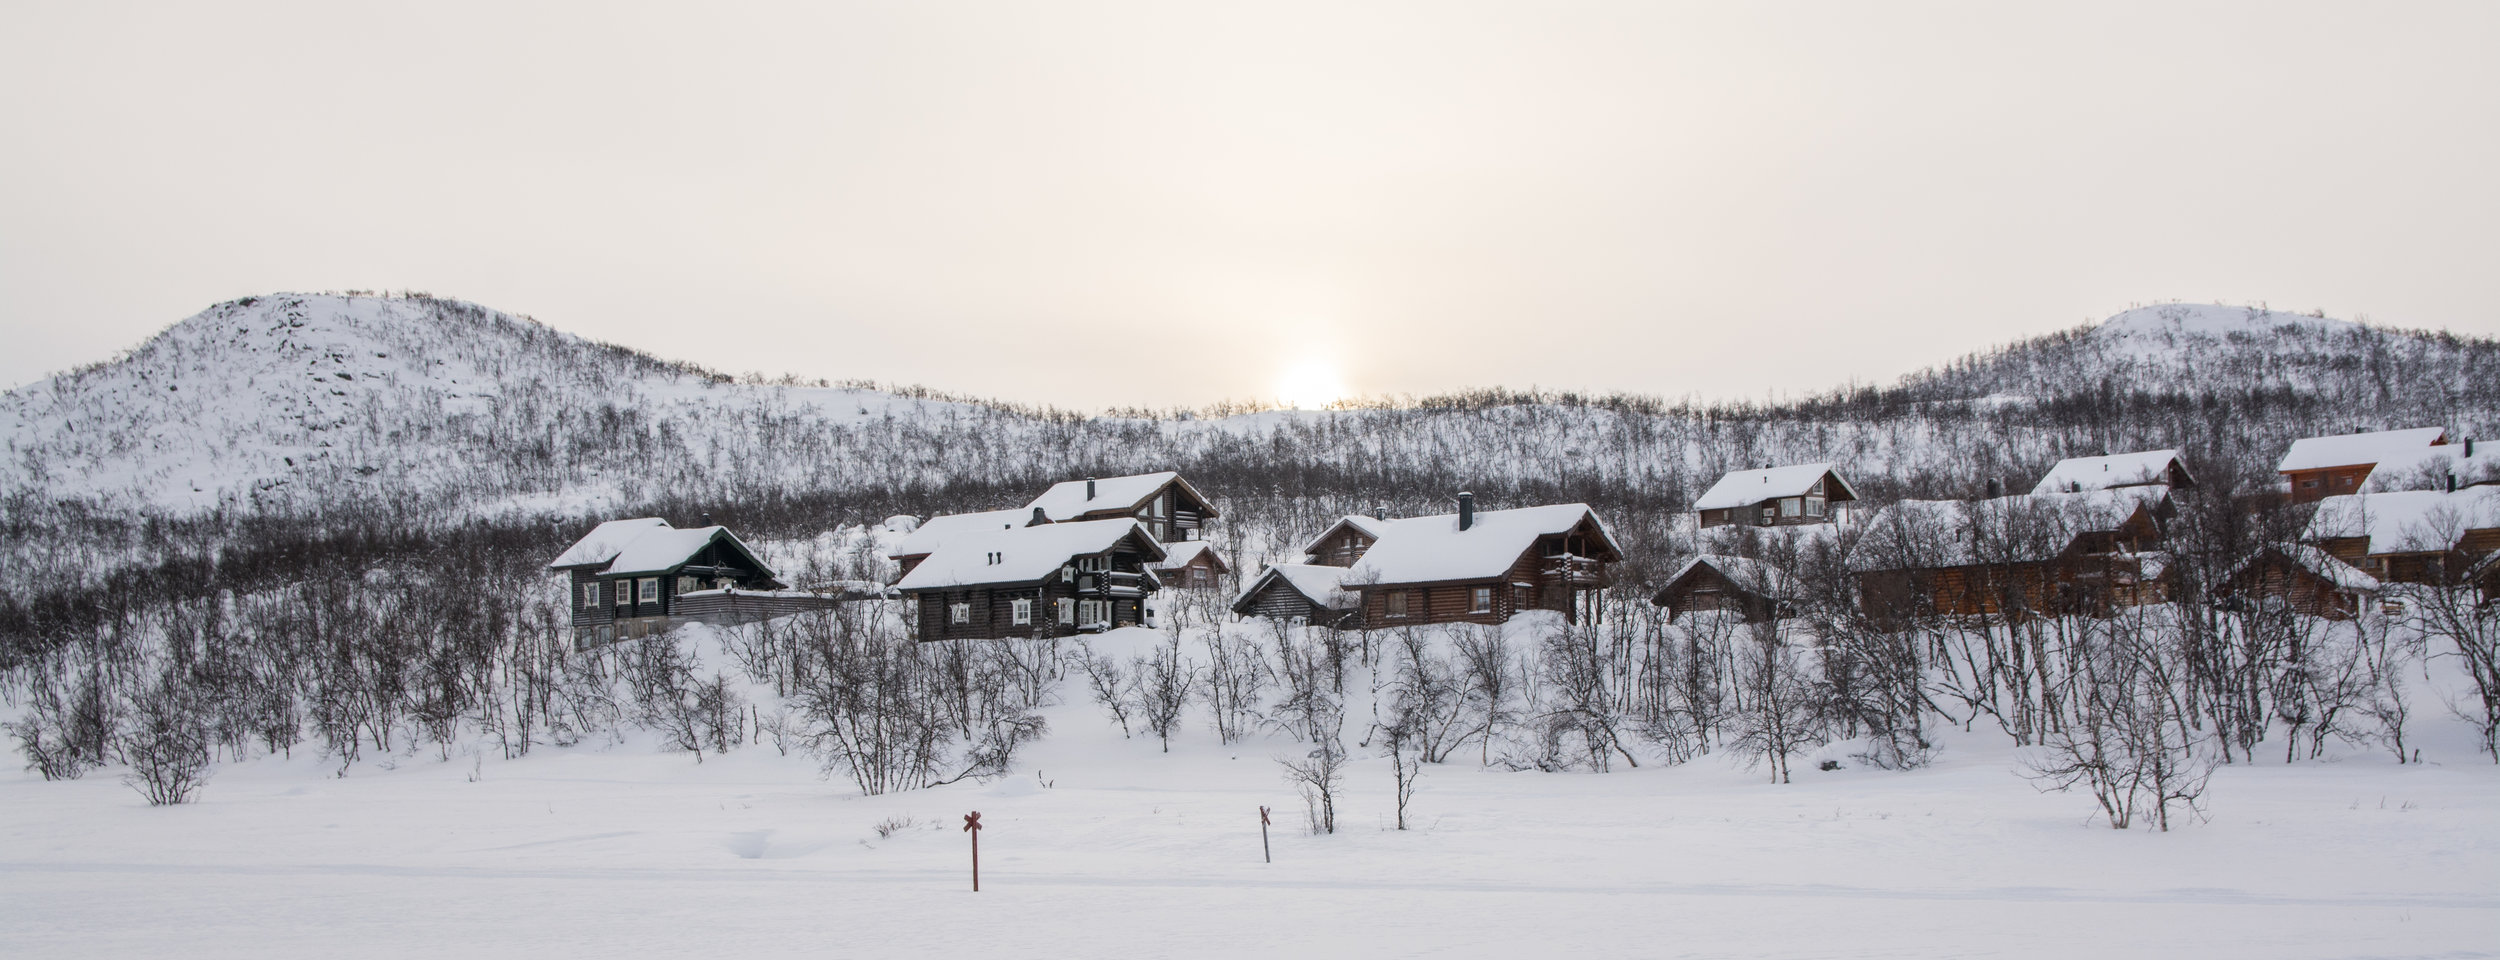 A row of houses along Lake Kilpisjärvi.